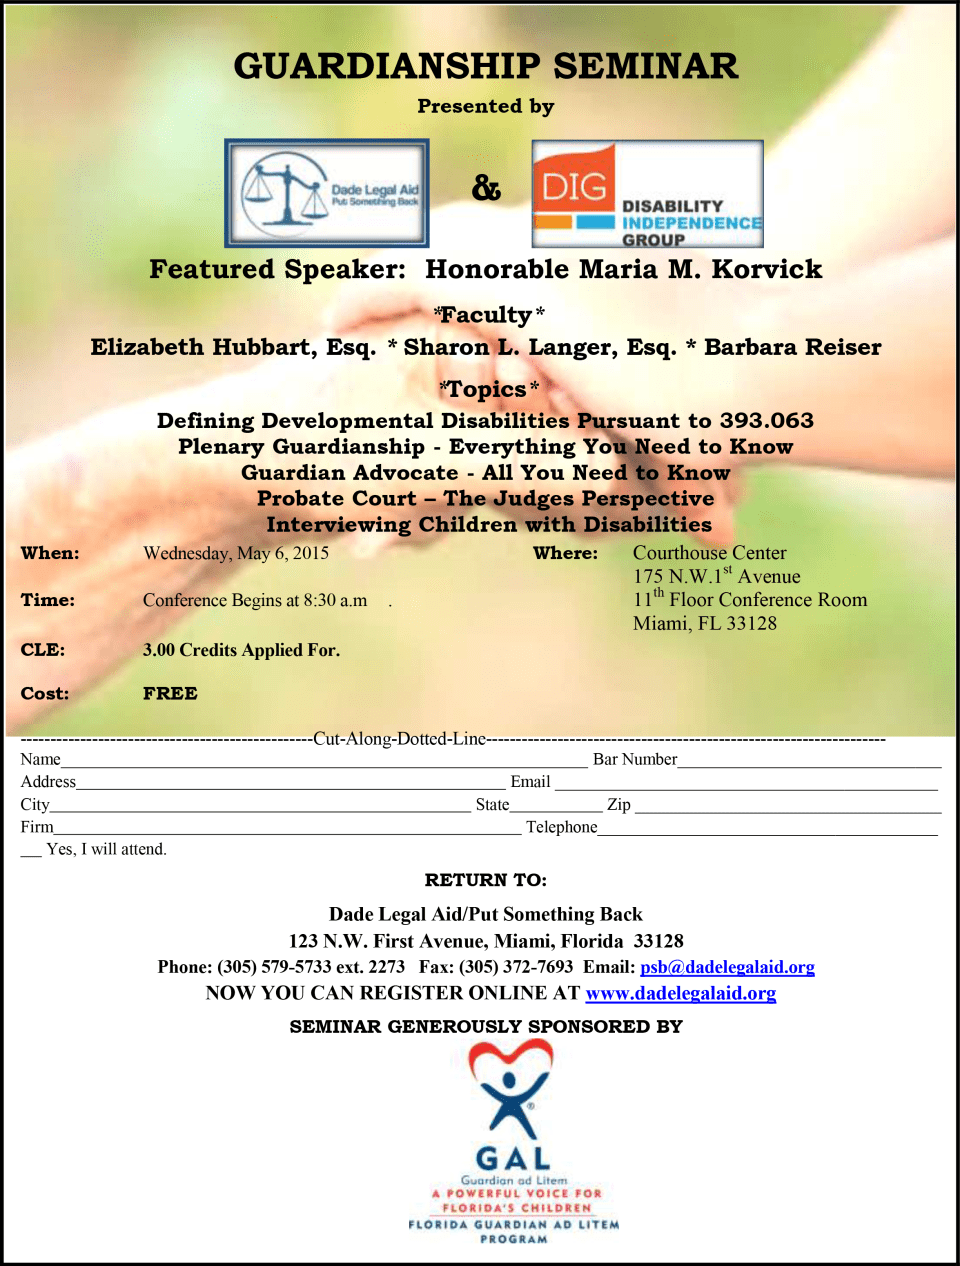 GUARDIANSHIP-SEMINAR-FLYER-5-6-15-Revised